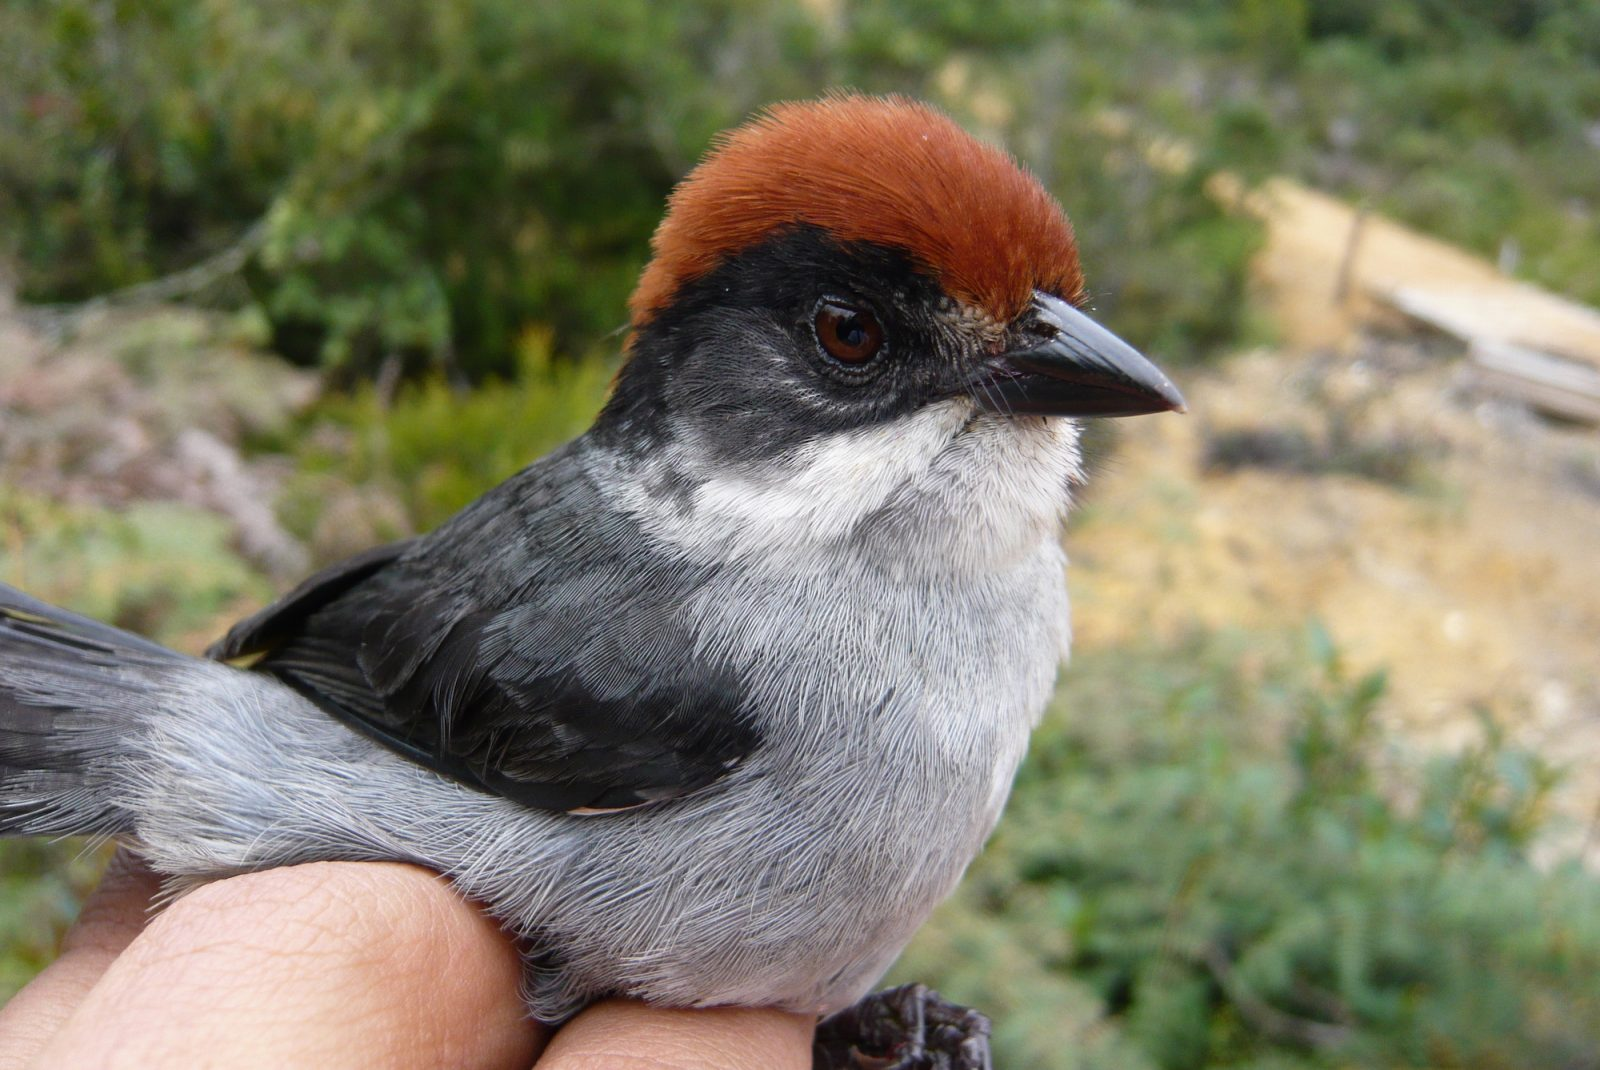 Critically Endangered Colombian bird rediscovered after 47 years